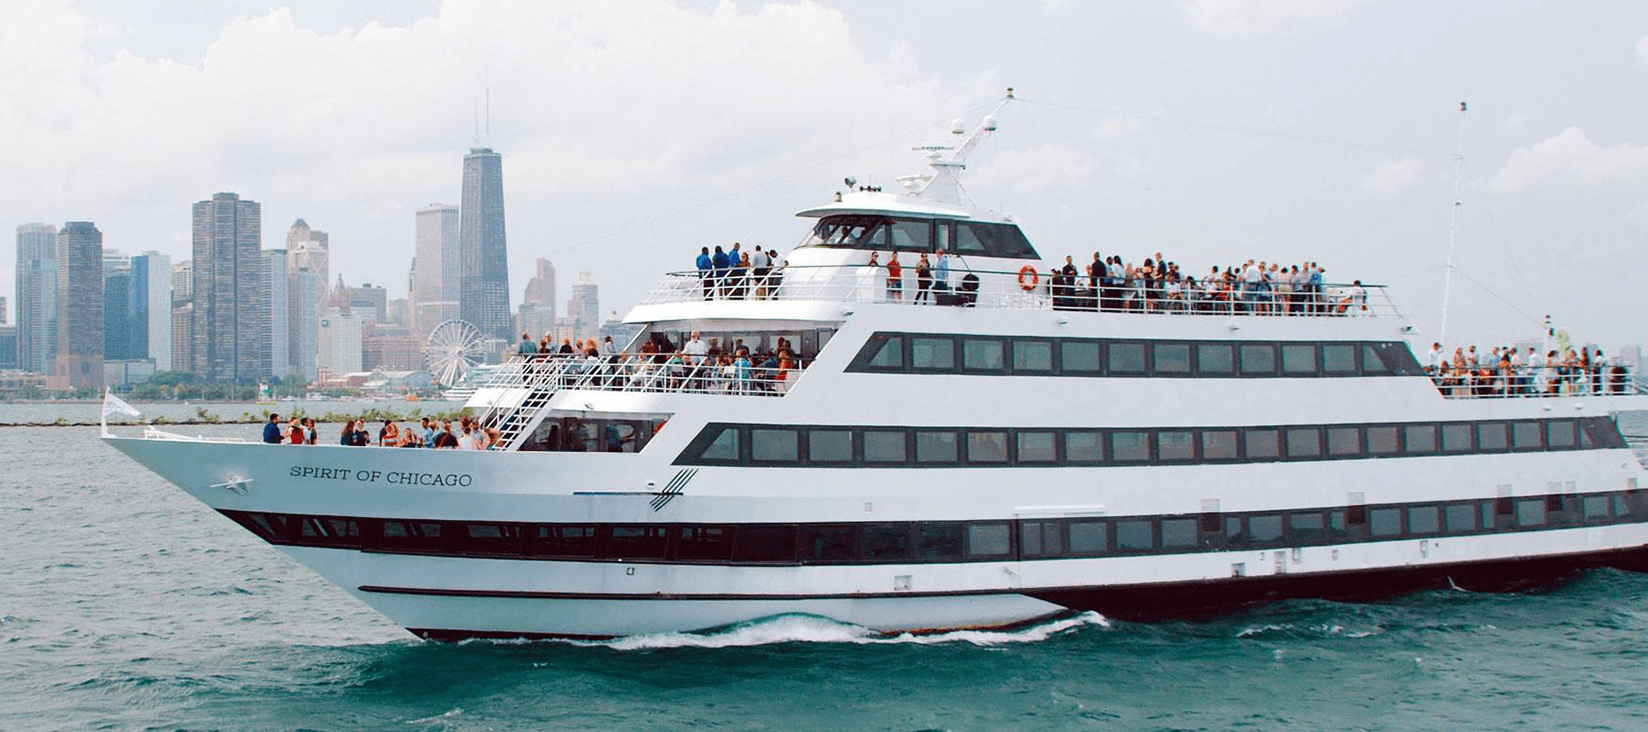 spirit of chicago summer social cruise